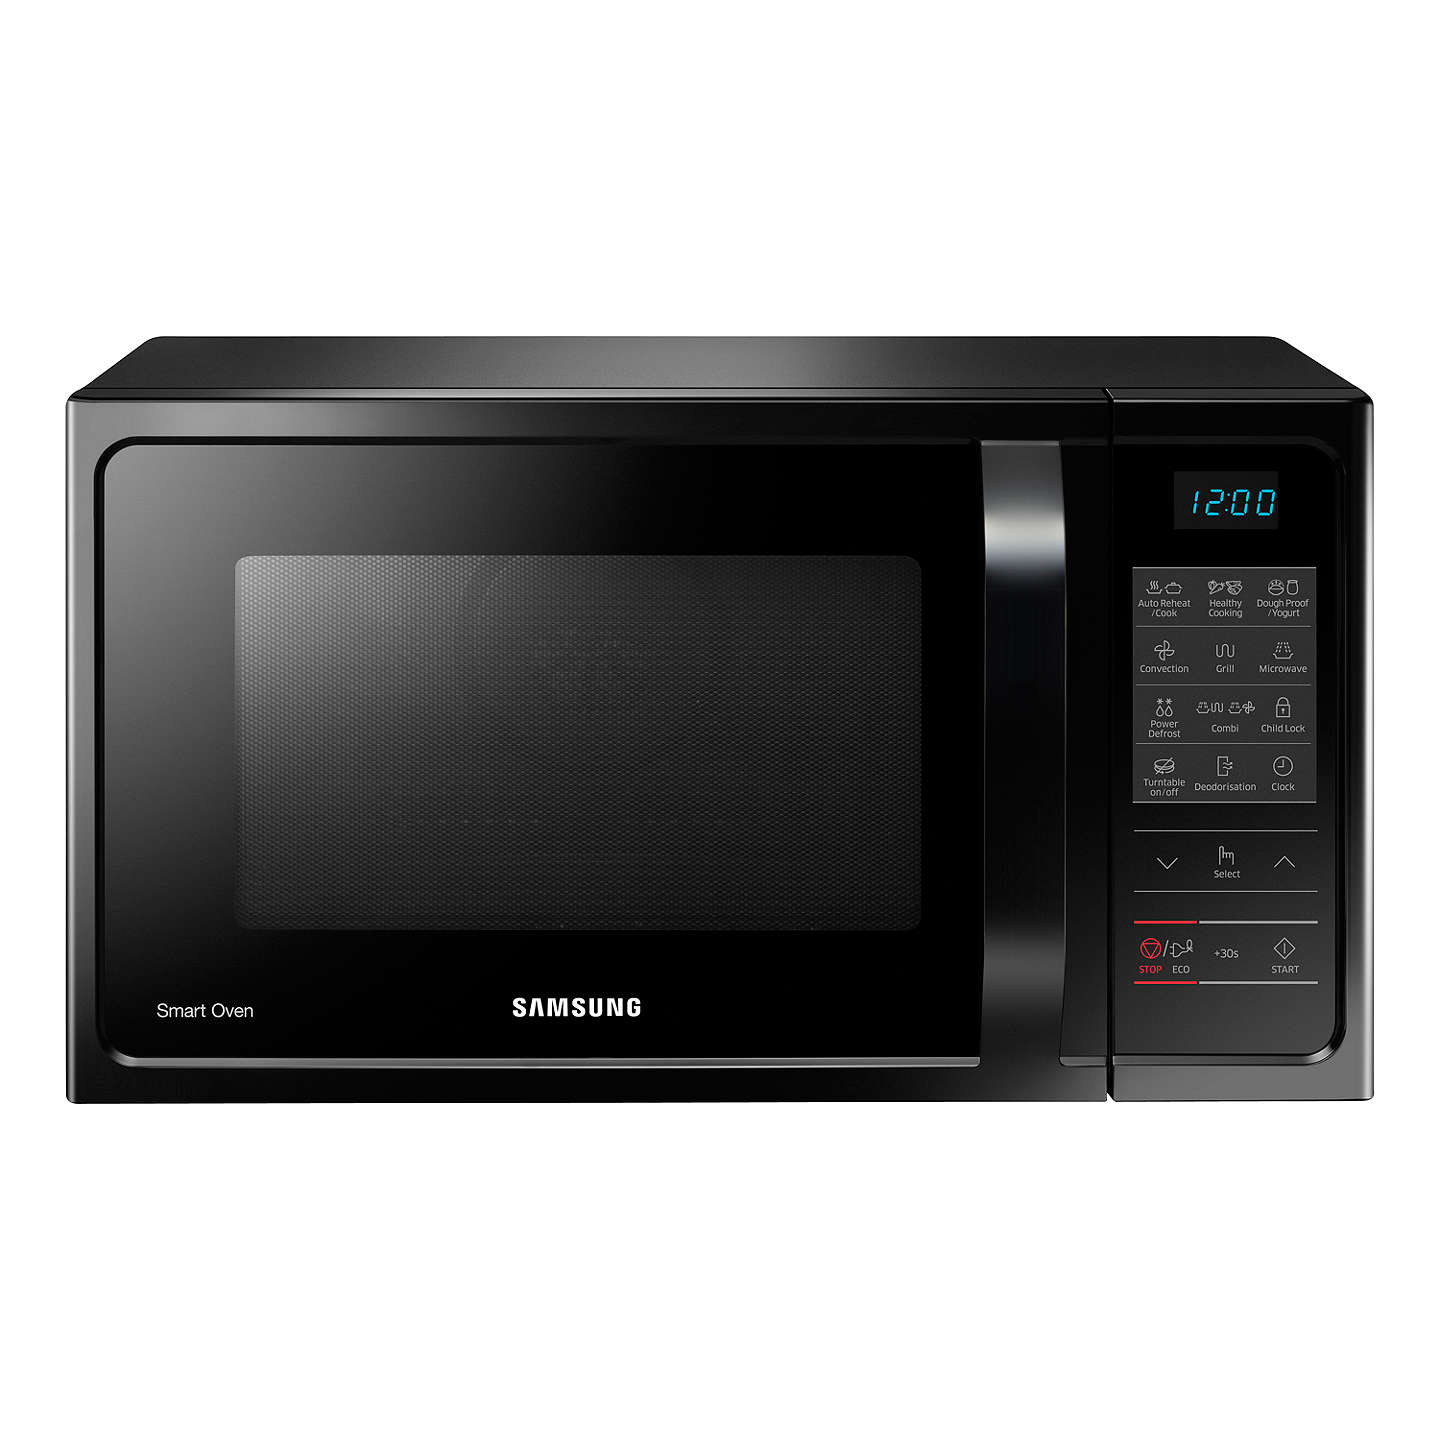 Samsung Mc28h5013ak Combination Microwave Oven Black Online At Johnlewis